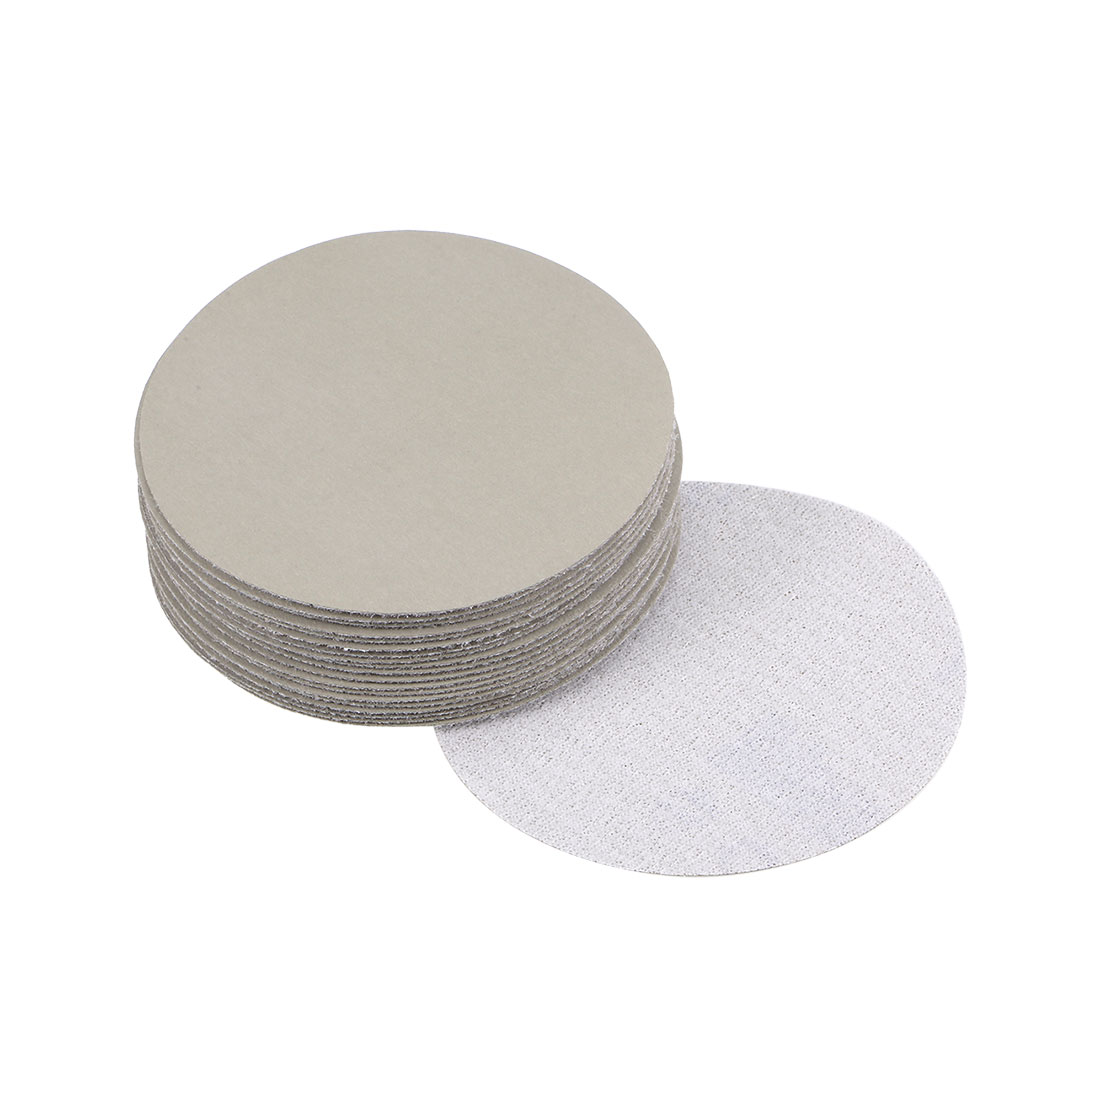 3 inch Wet Dry Discs 5000 Grit Hook and Loop Sanding Disc Silicon Carbide 20pcs